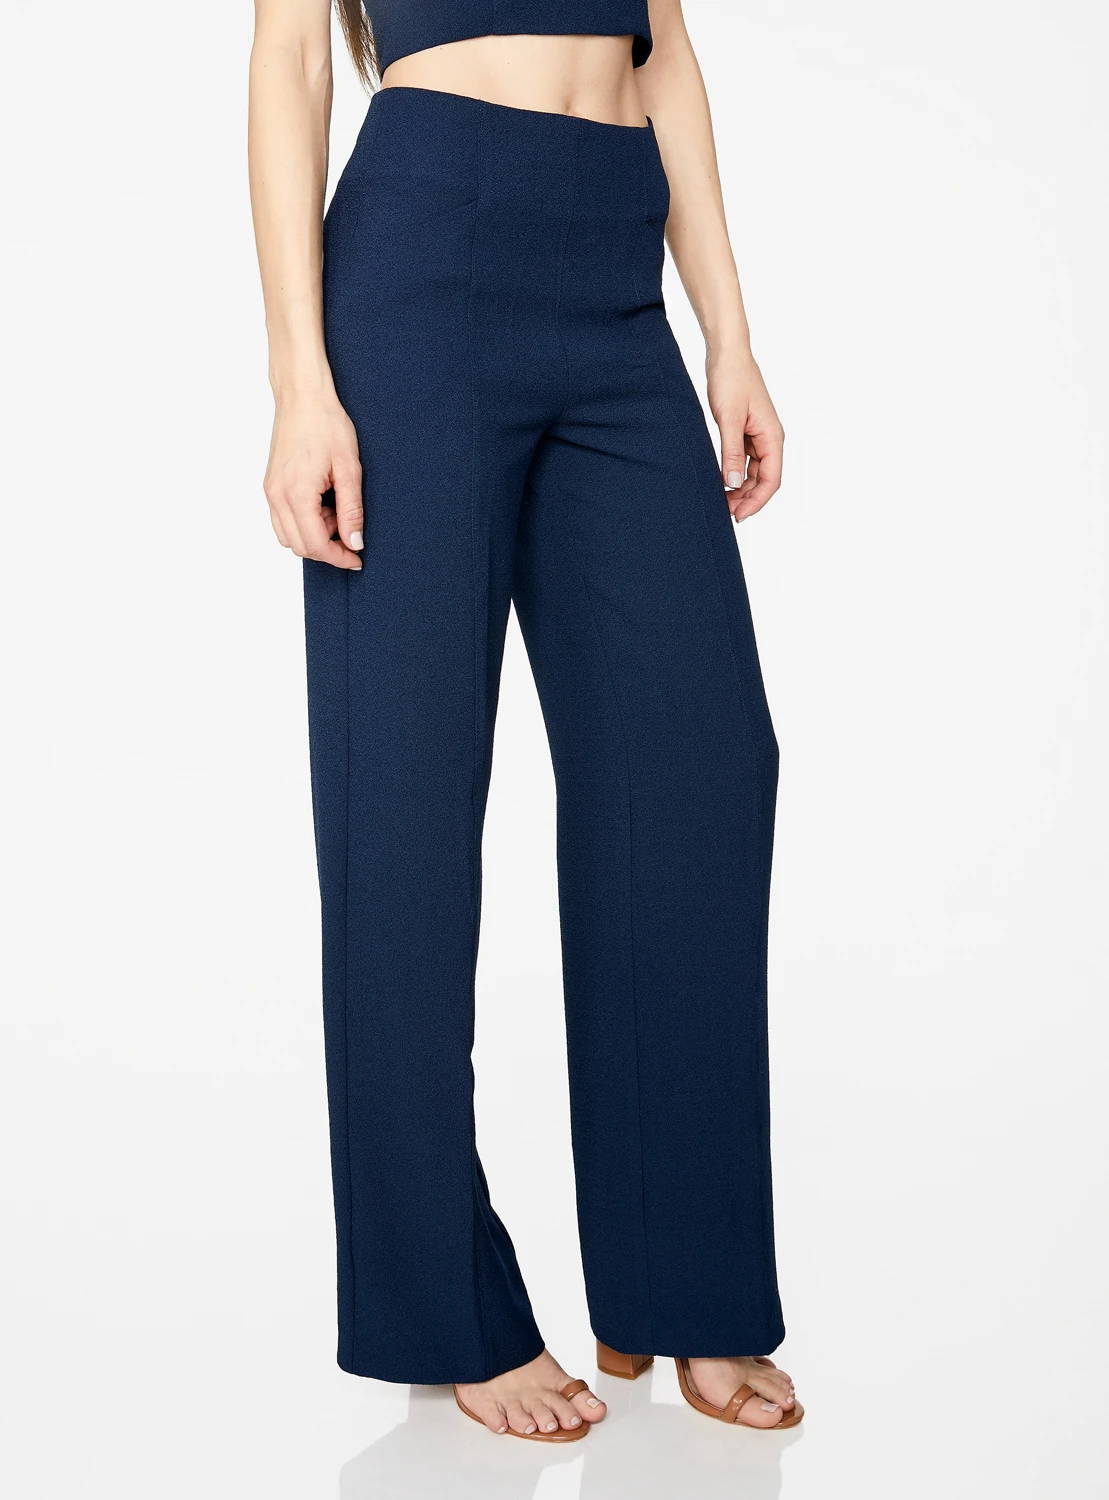 Indigo High-Waisted Relaxed Side Zip Trousers